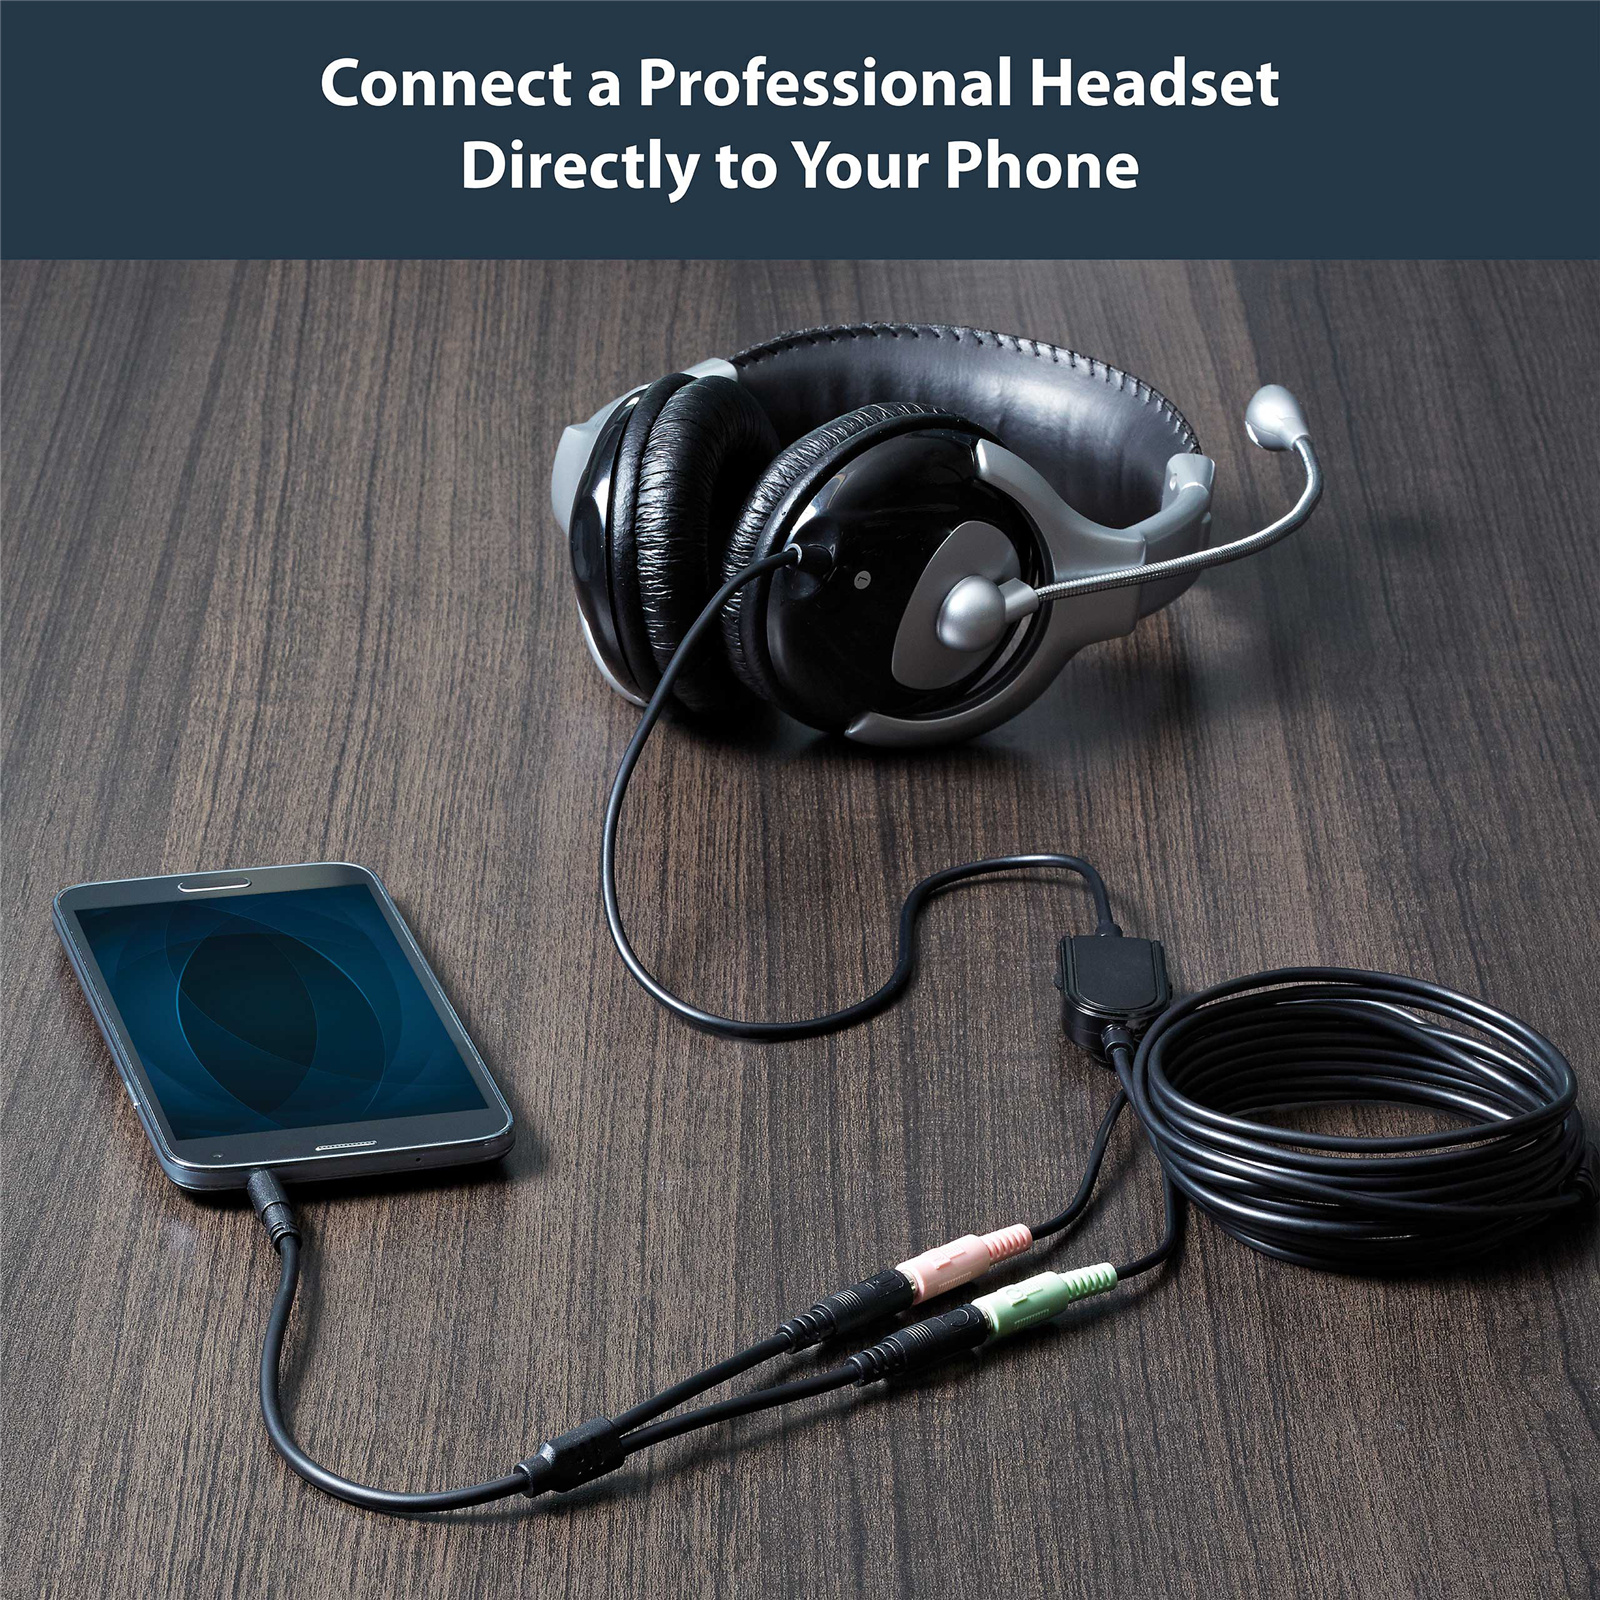 StarTech.com MUYHSMFF Headset adapter for headsets with separate headphone mic